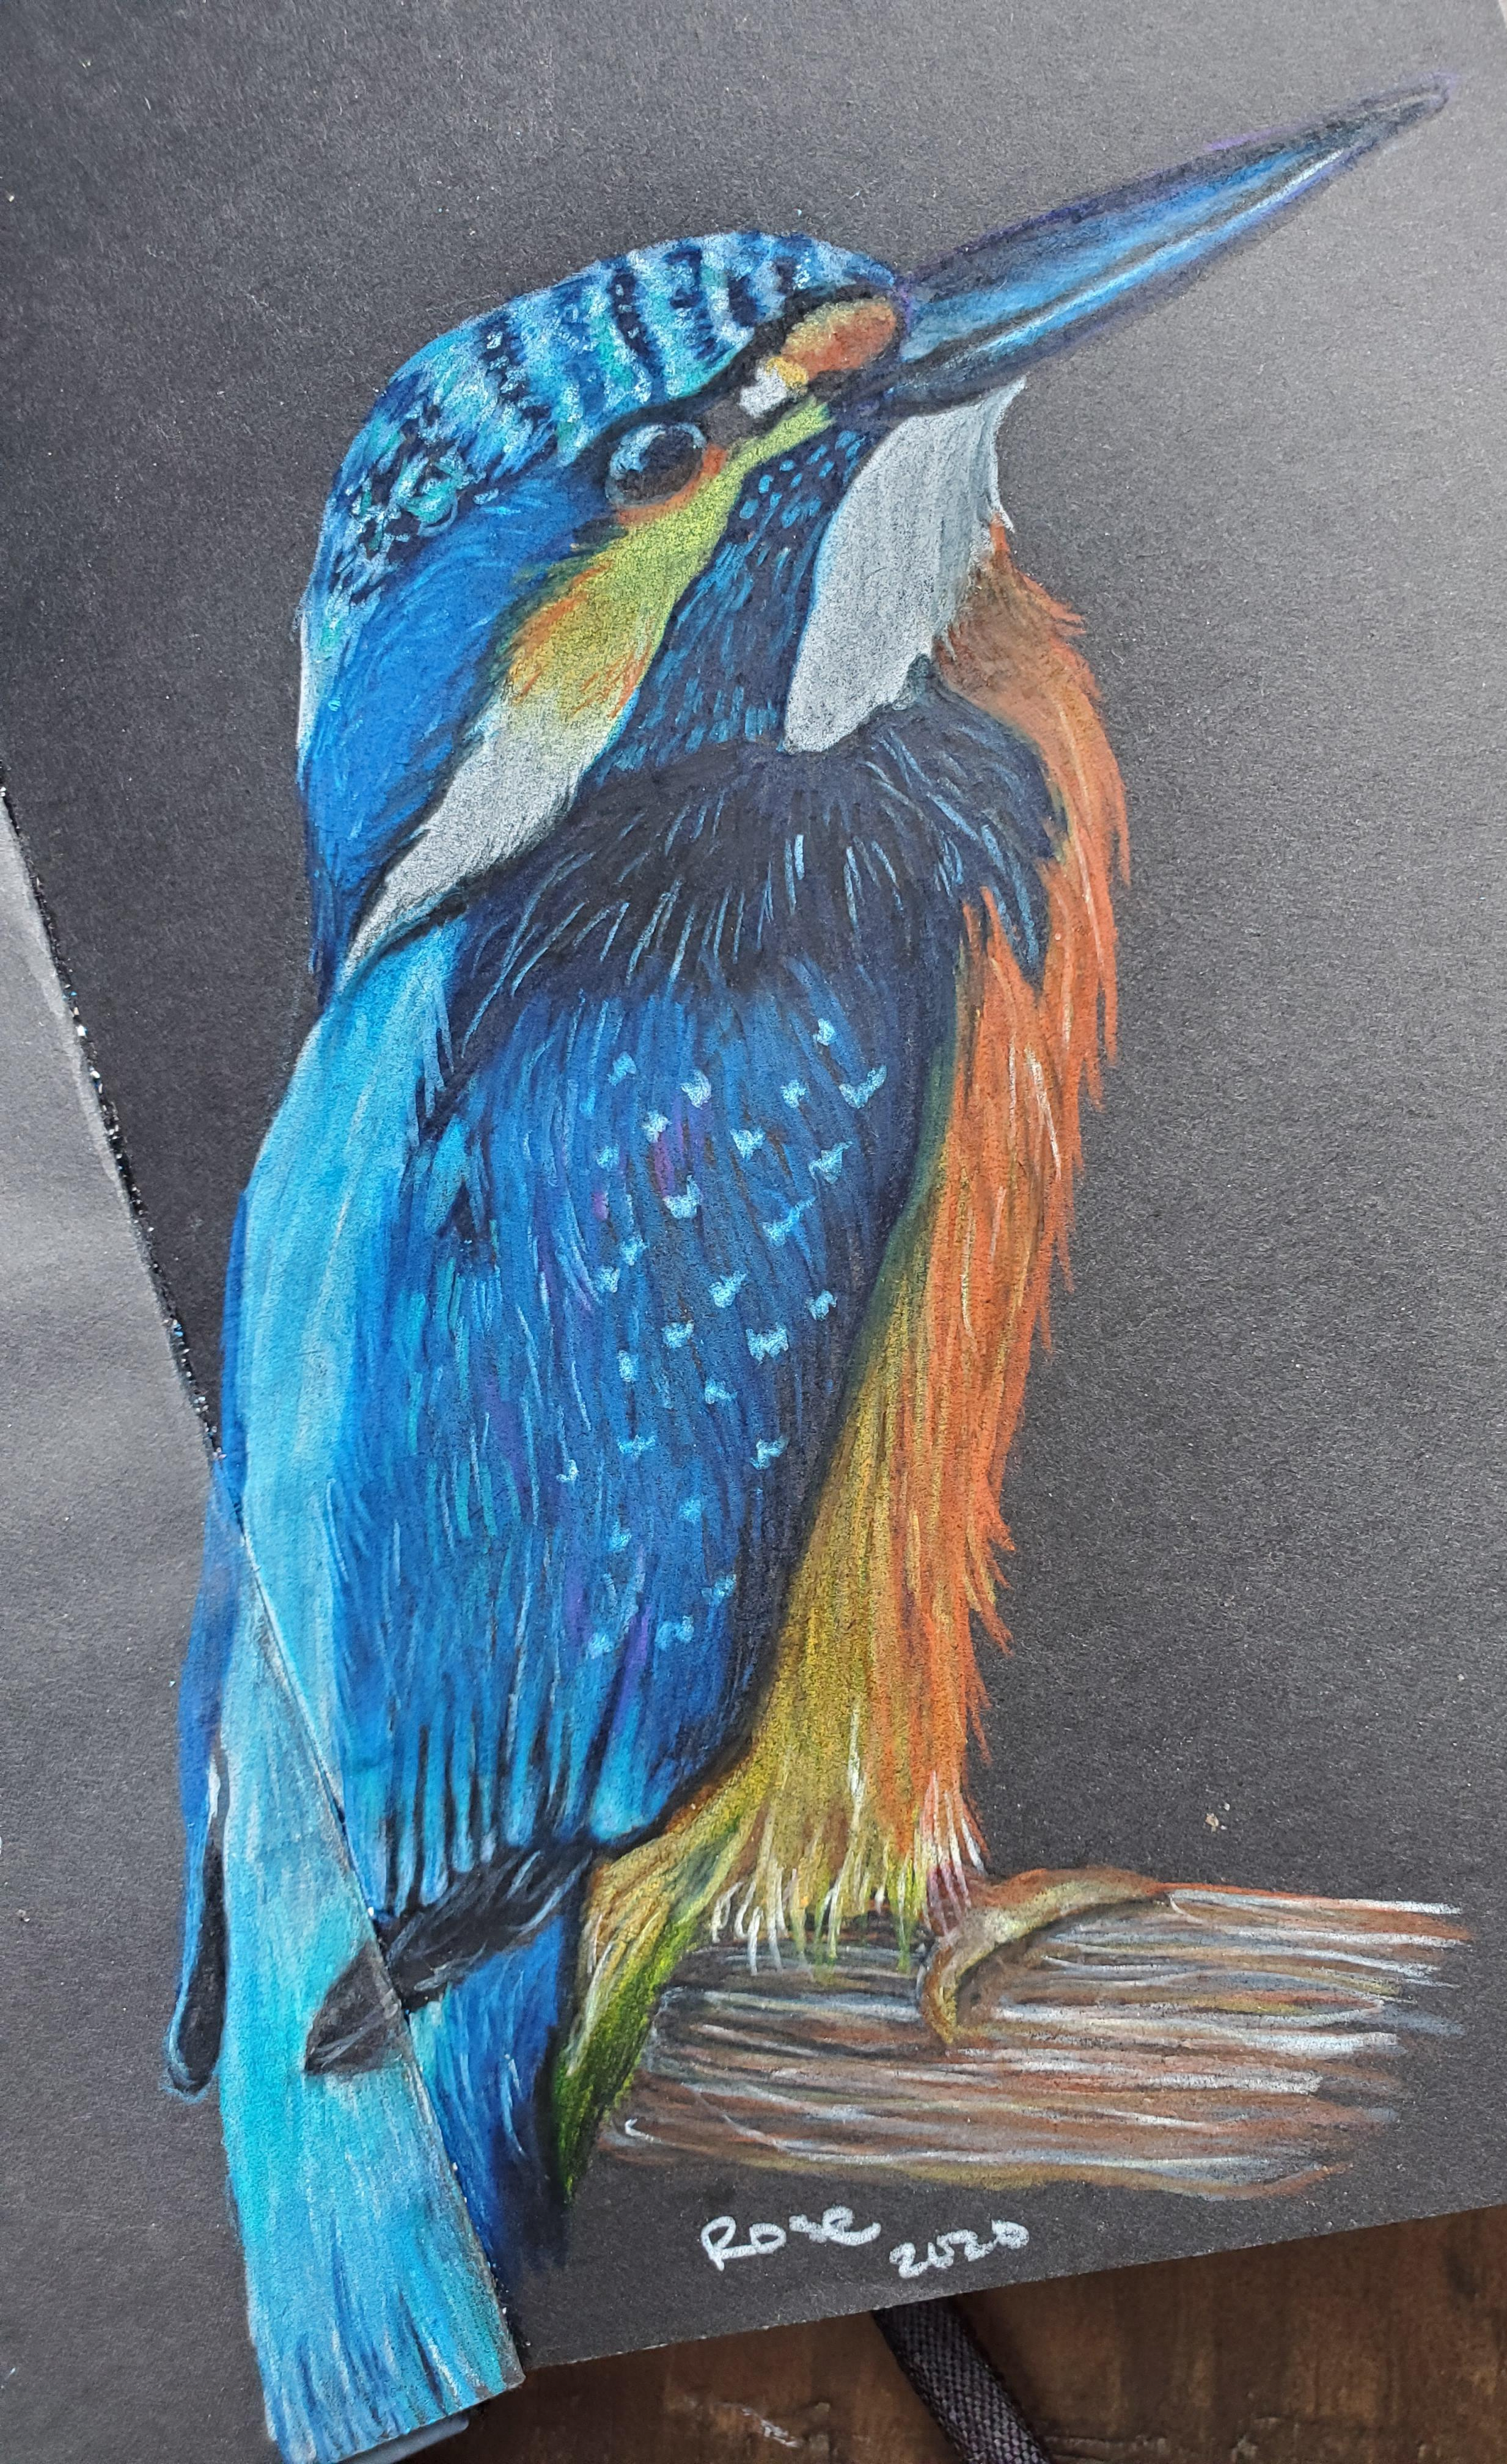 Things To Draw With Color : things, color, Favorite, Things, Birds., Colored, Pencil, Black, Paper., Birds?, Kingfisher, Wildart